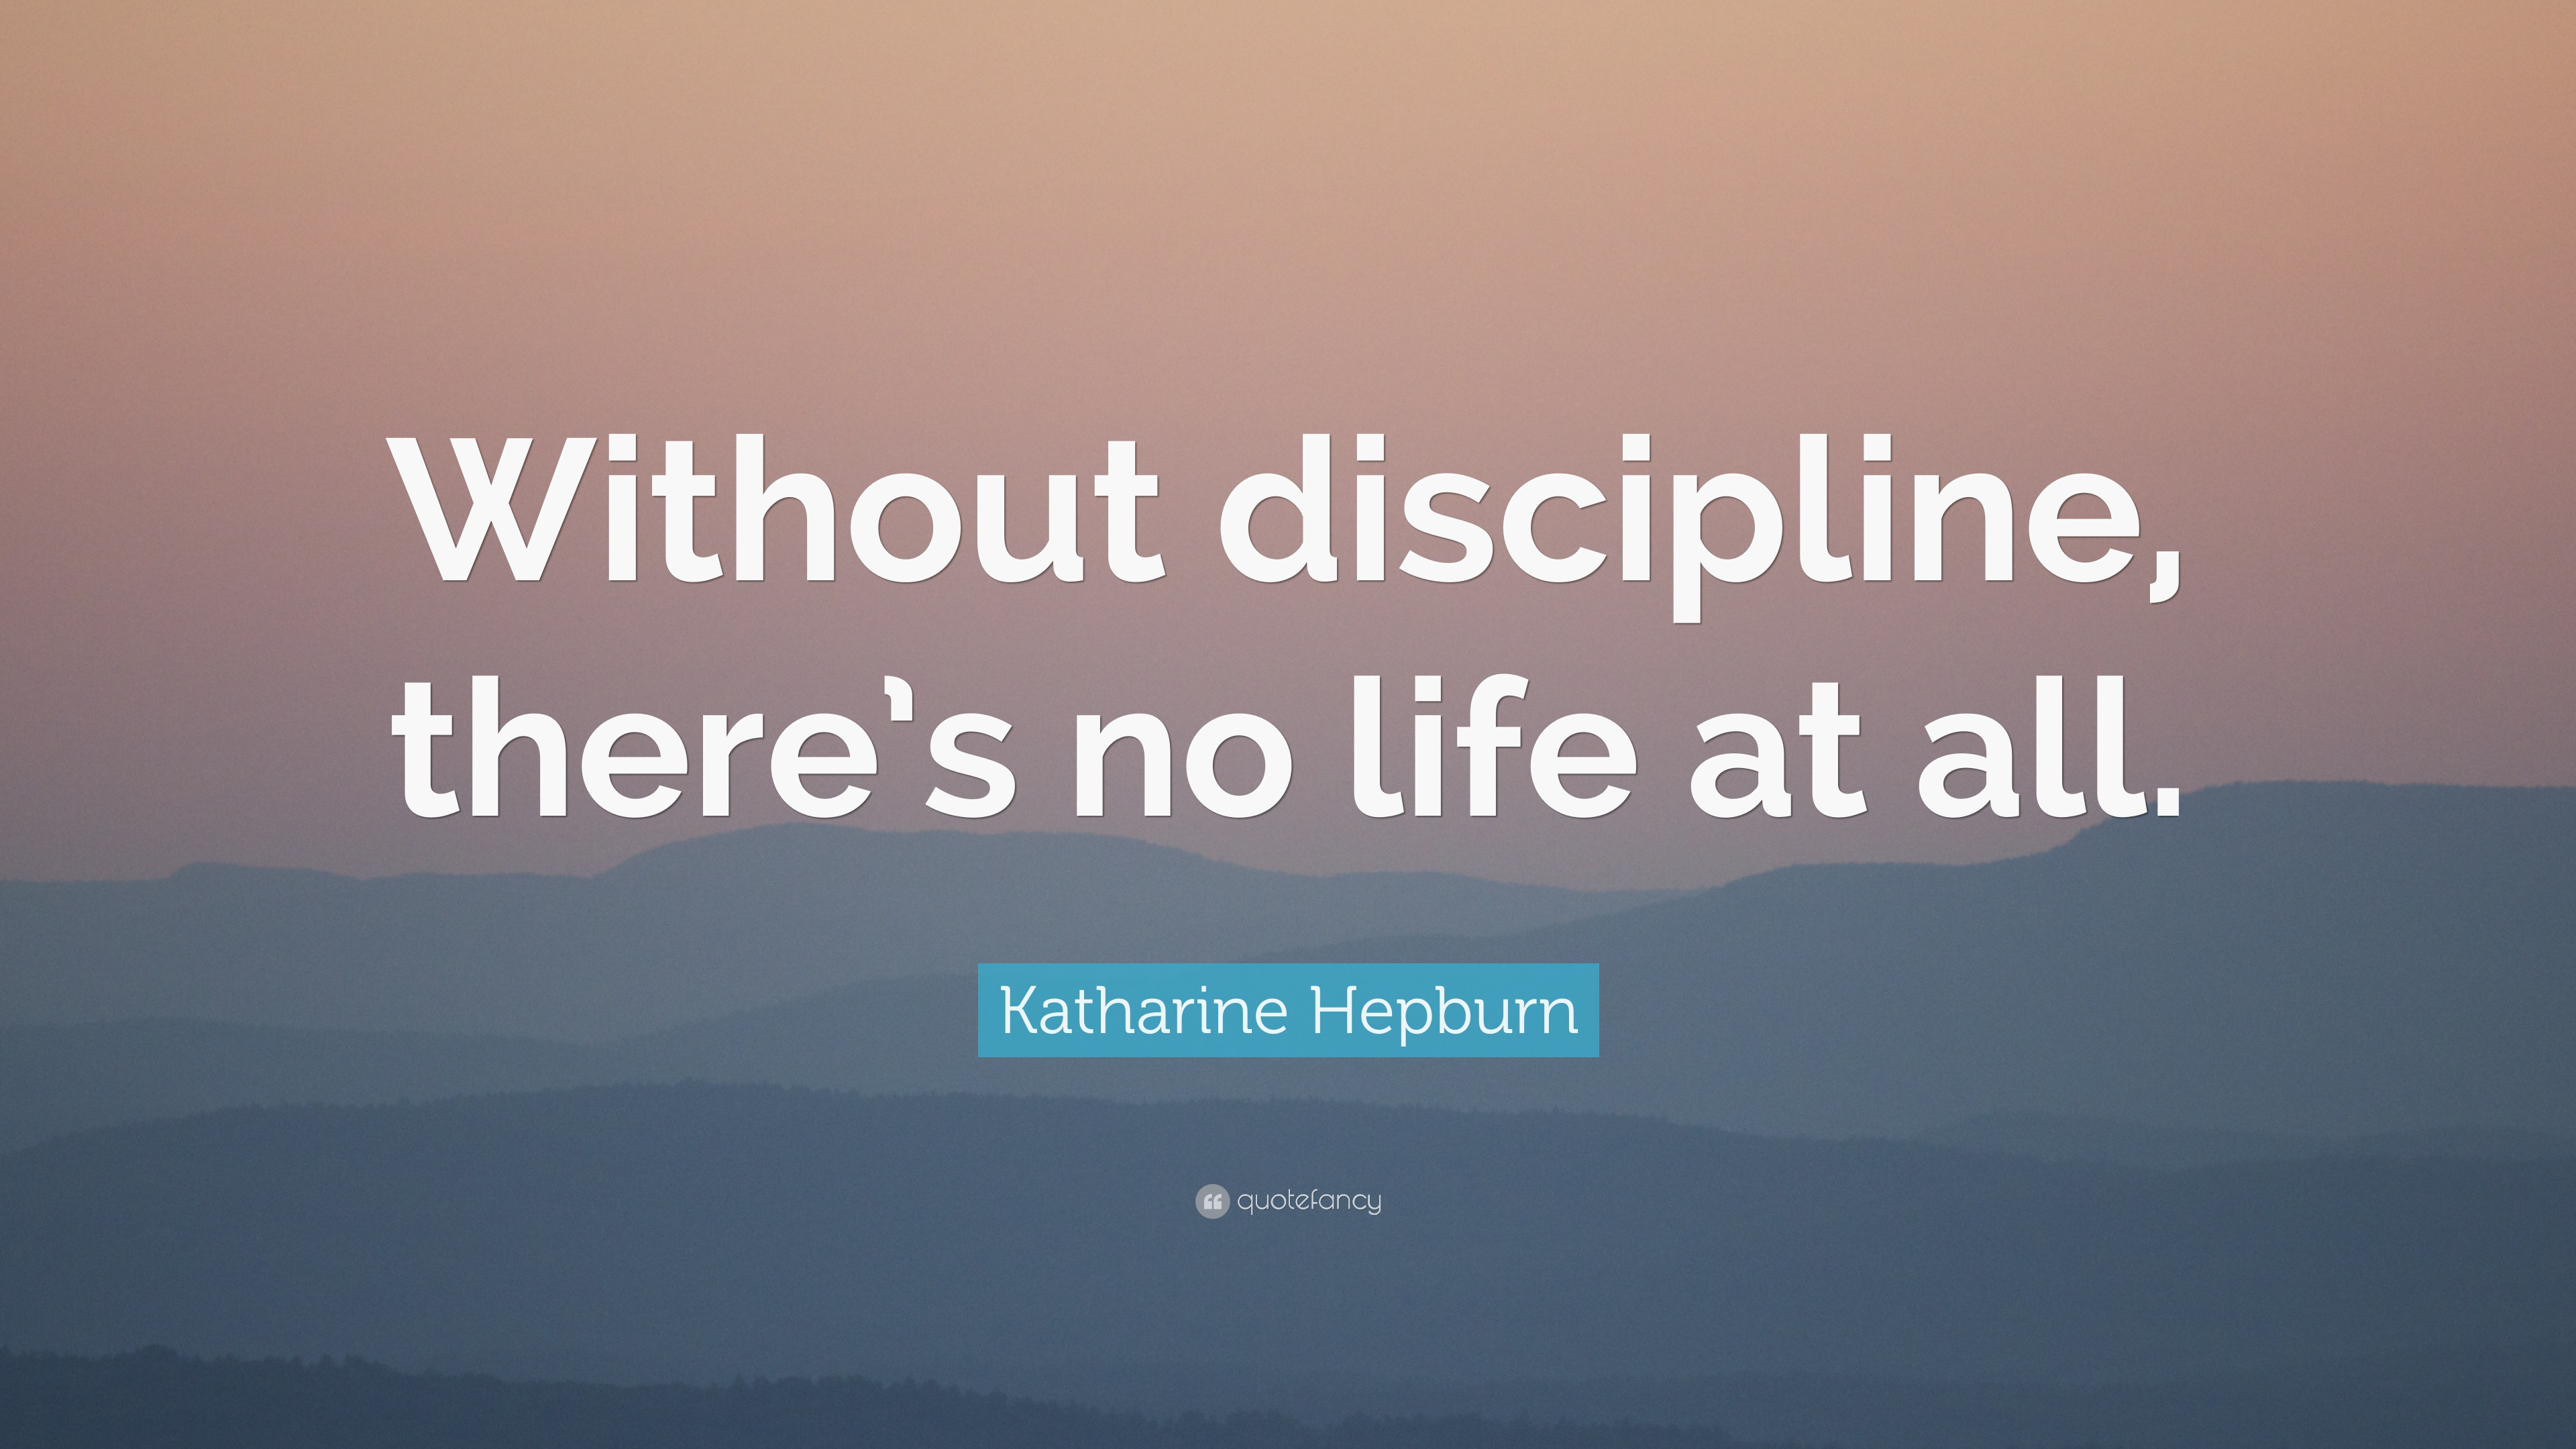 Quotes On Succeeding In Life Discipline Quotes 41 Wallpapers  Quotefancy